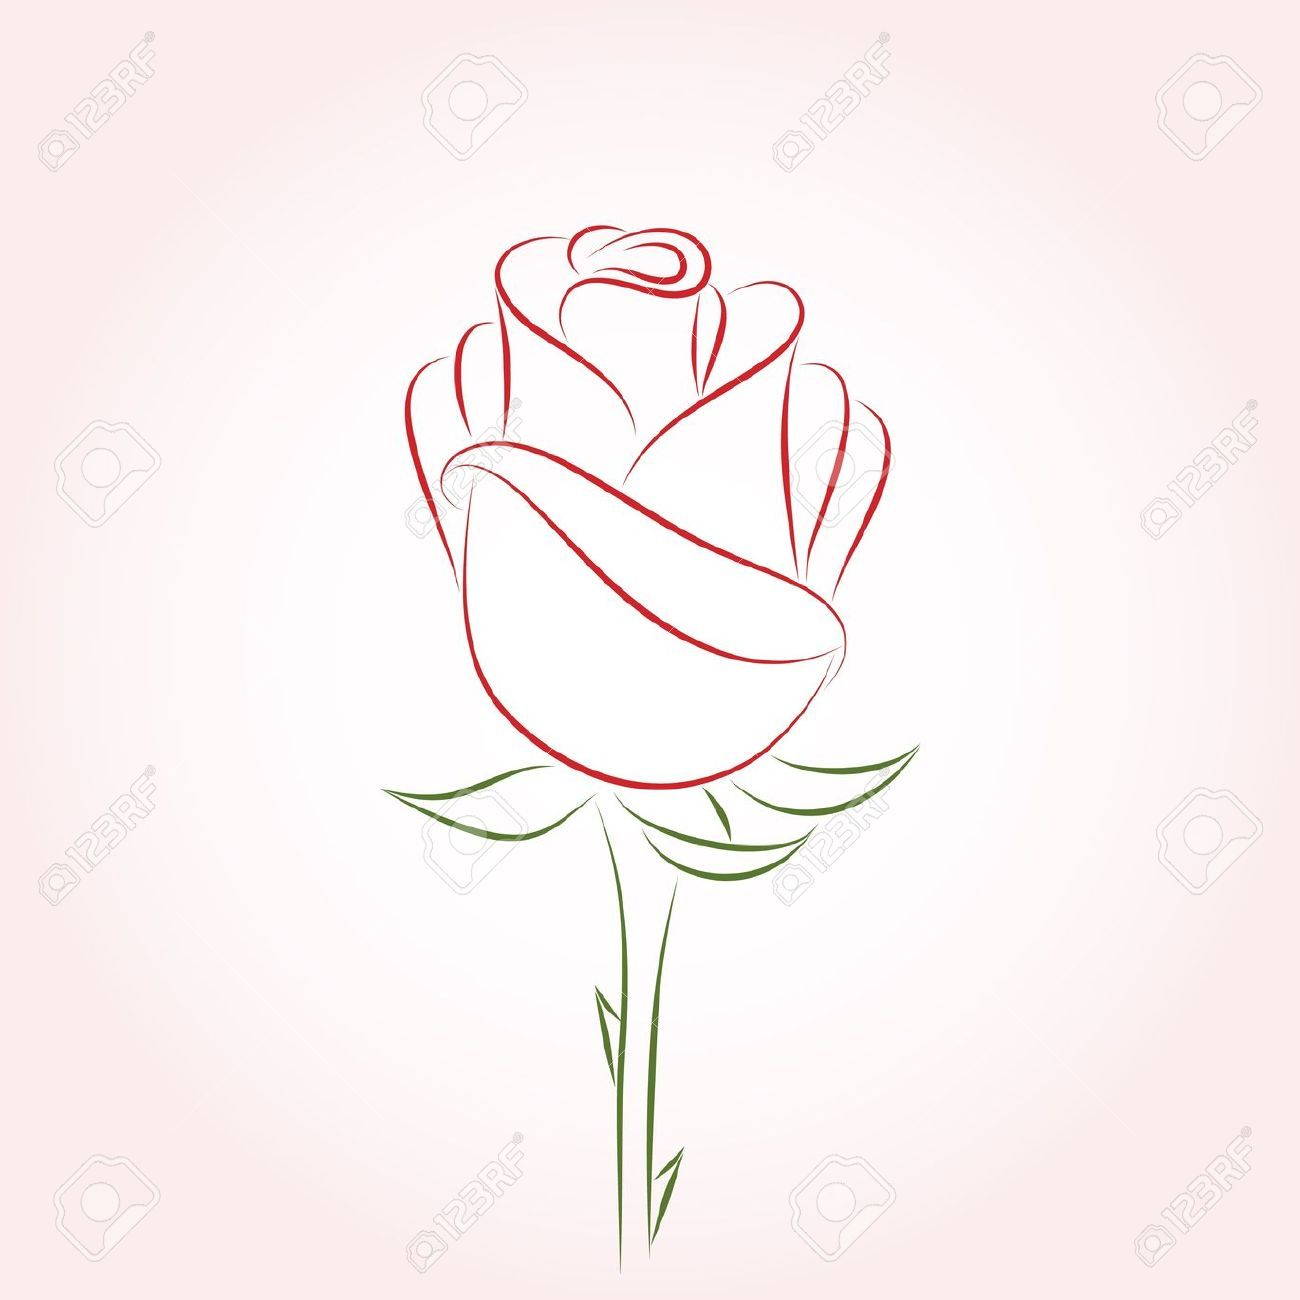 Single rose outline images galleries for Individual rose petals